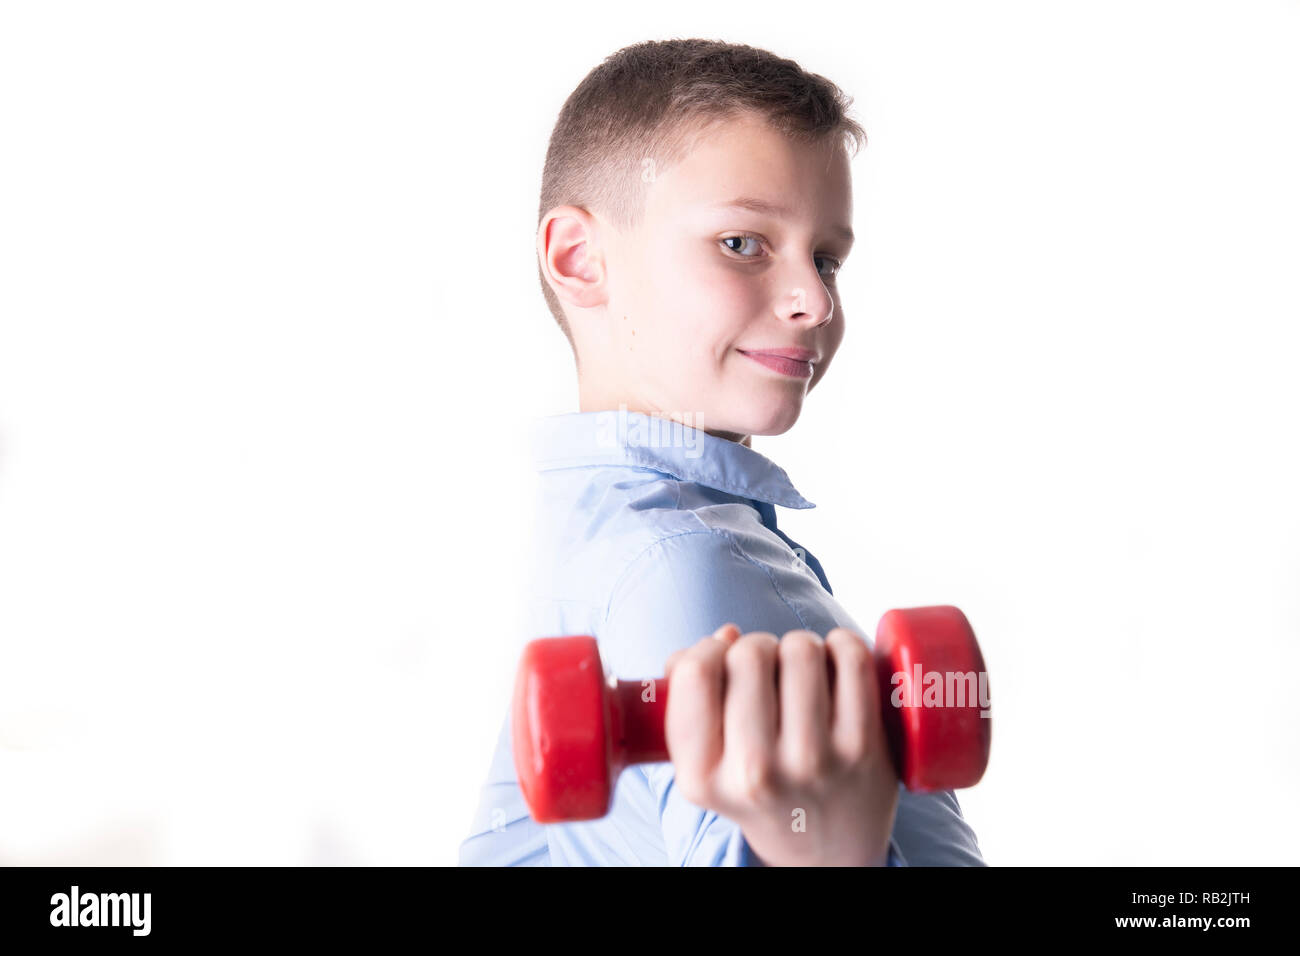 Boy with red dumbbell looks directly into the camera isolated on white background workout strength training - Stock Image